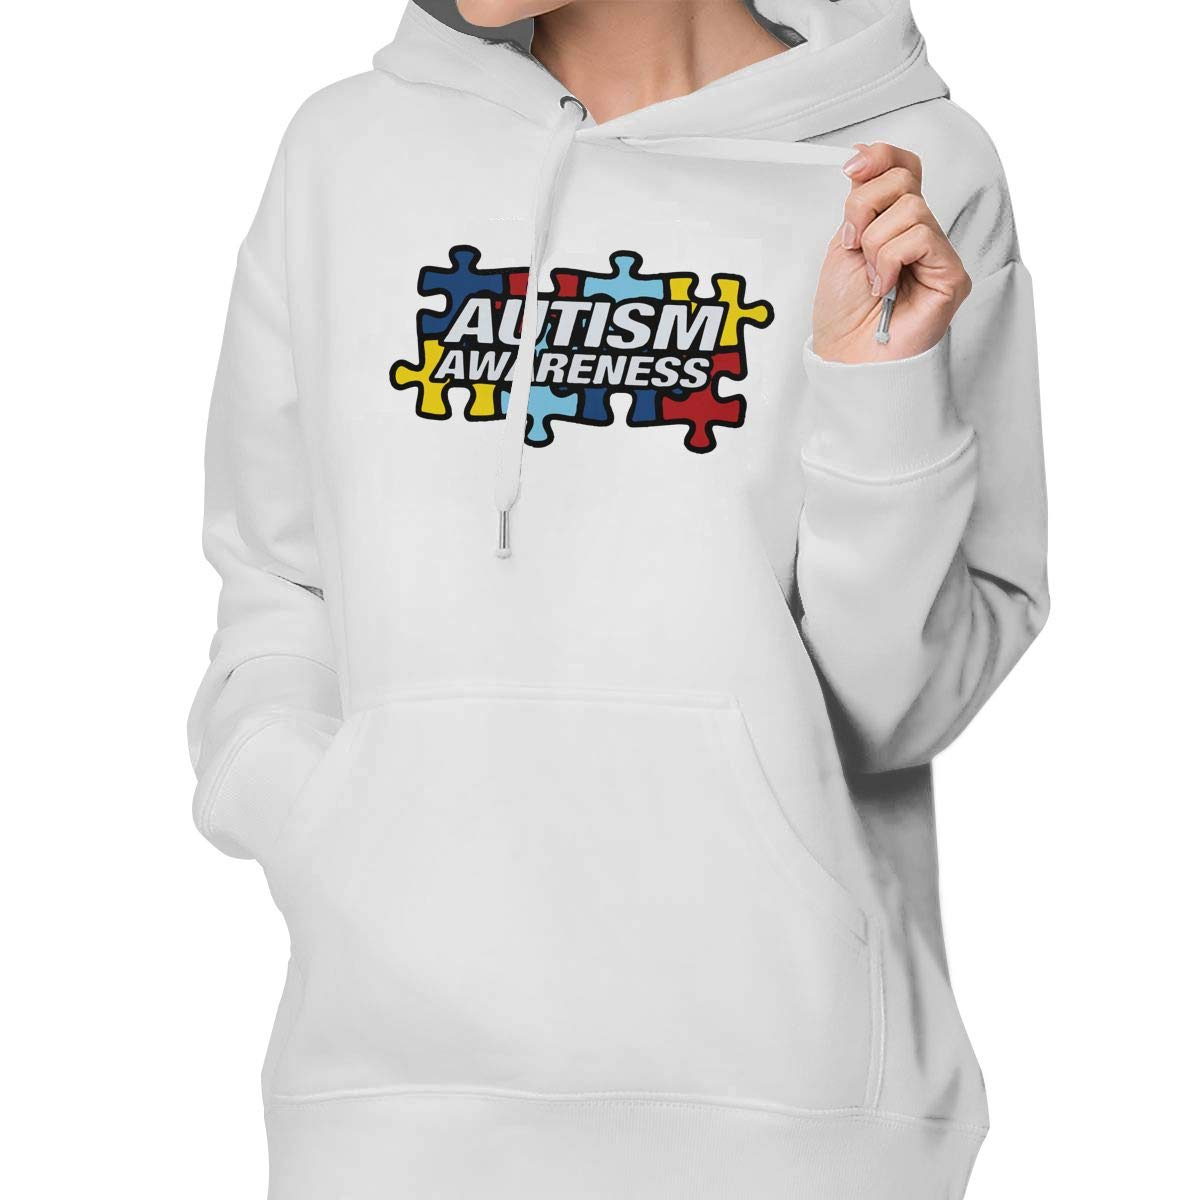 MIKGI Autism Awareness Women Casual Sweater Pullover Knit Soft Warm Thick Crewneck Long Sleeve Hoodie